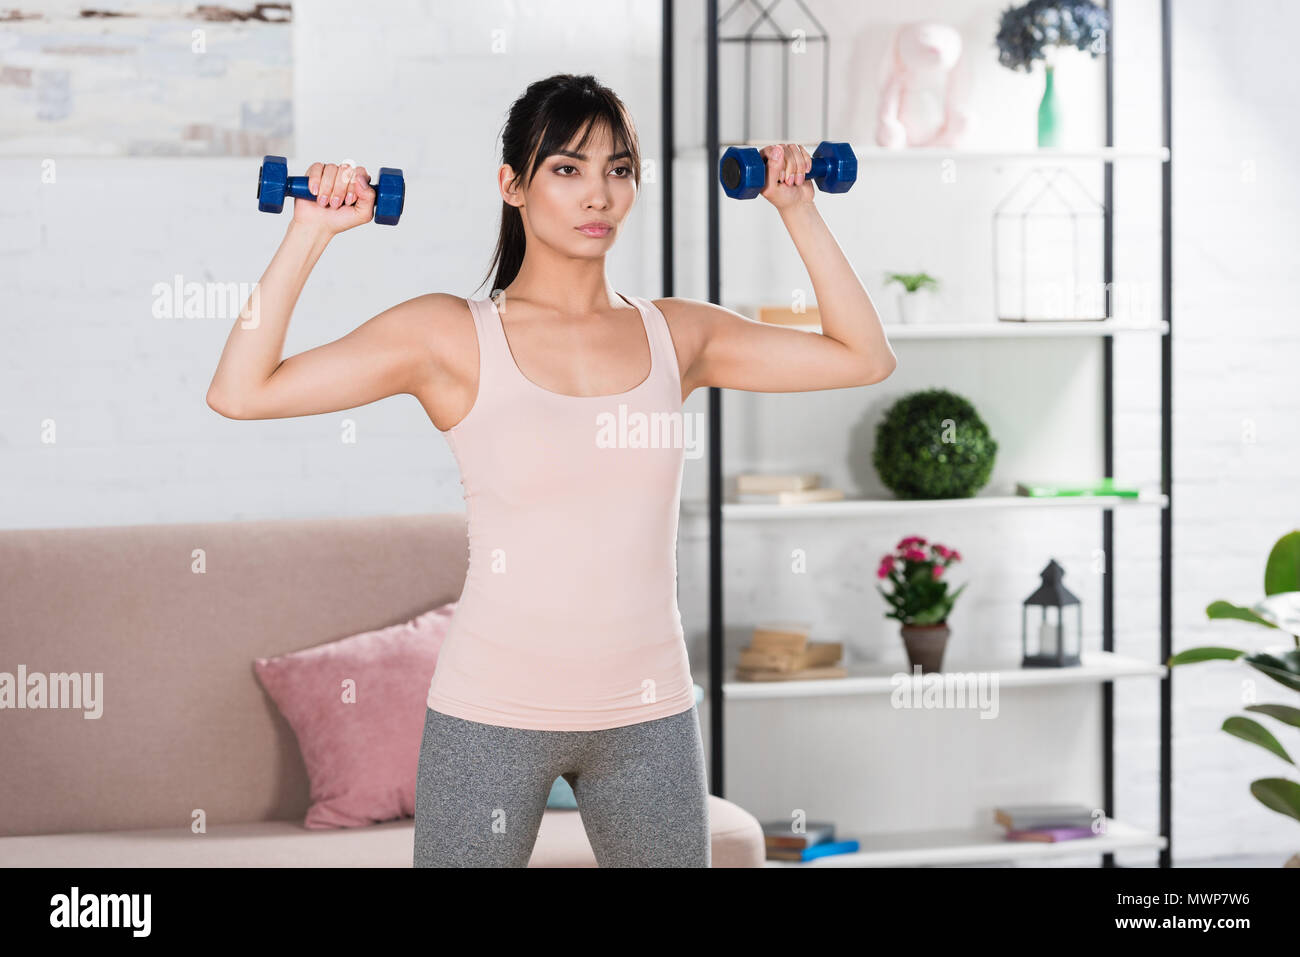 Attractive Girl Doing Workout Dumbbells Stock Photos